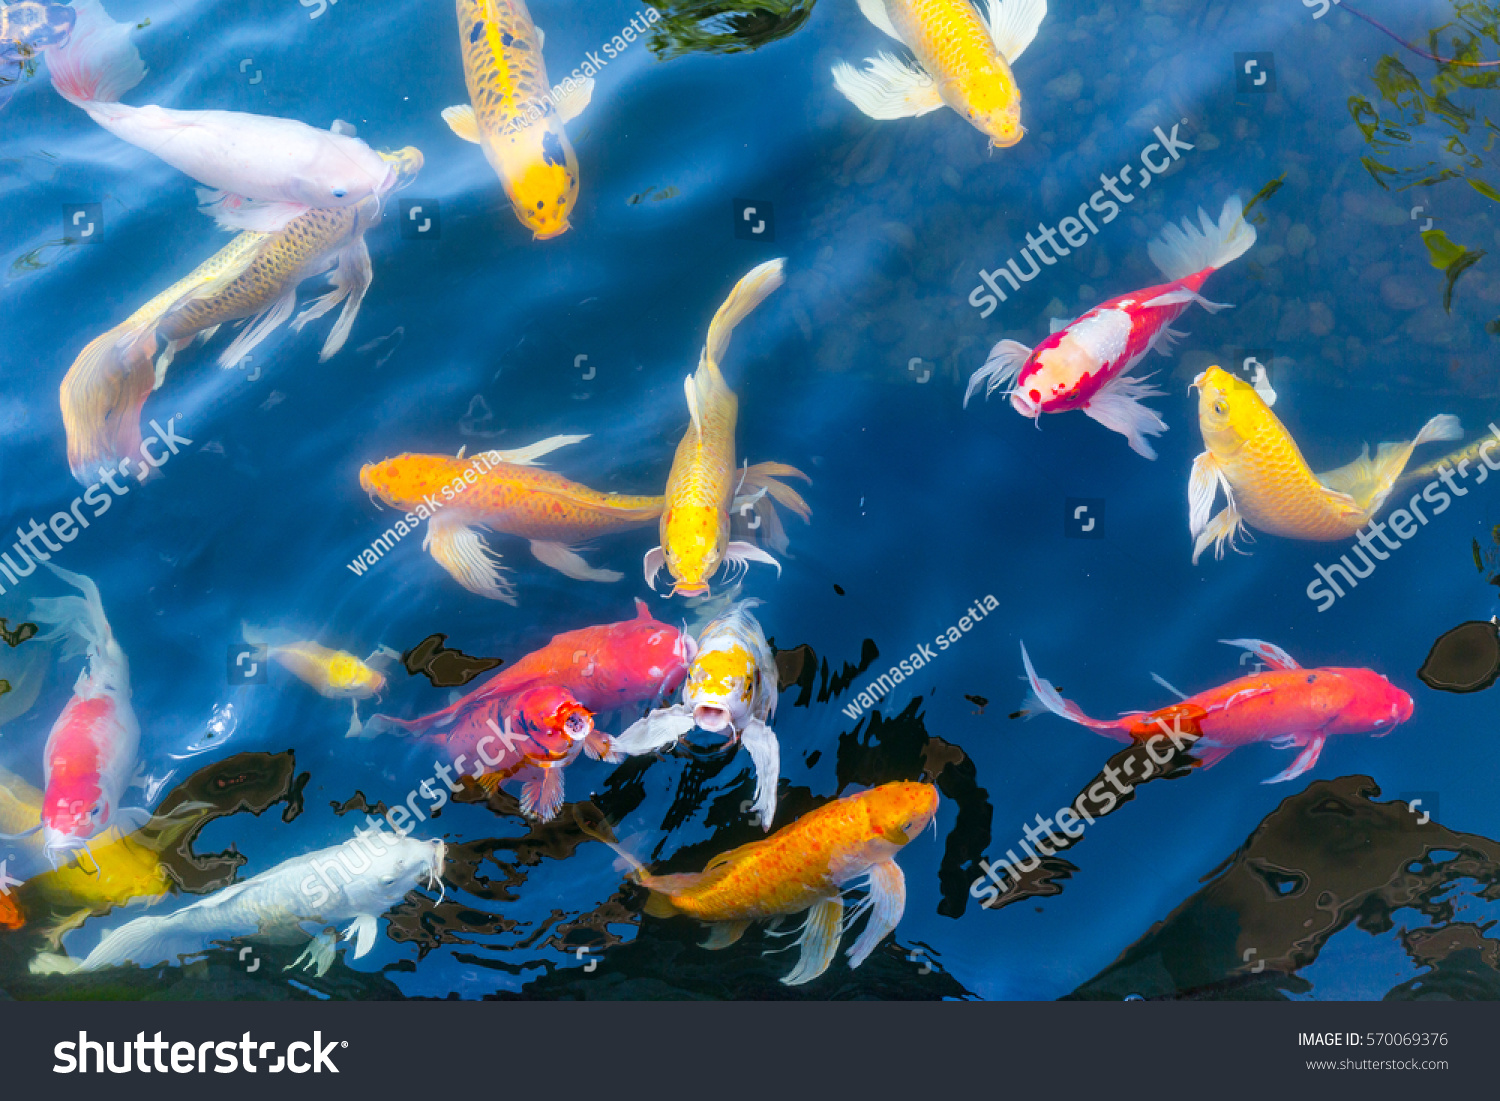 Koi fish pond lagerfoto 570069376 shutterstock for The koi pool fishing tackle